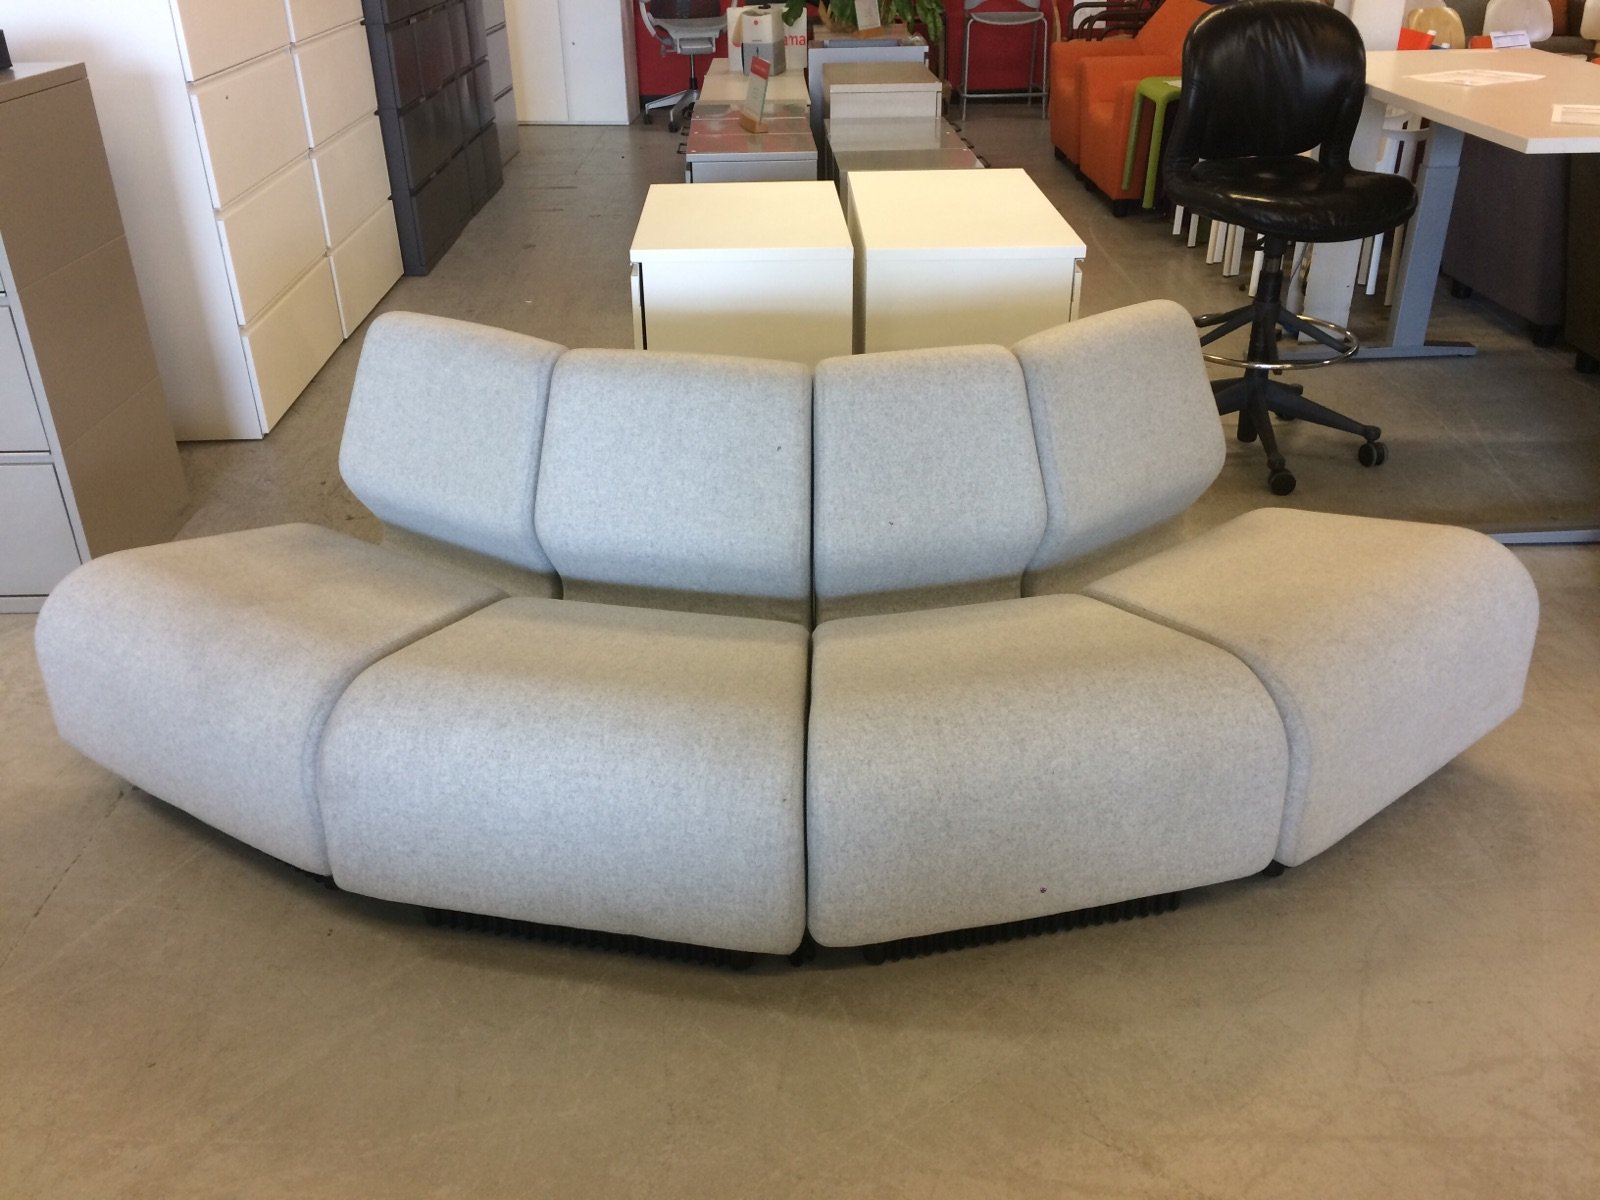 blog » office outlet  an outlet source for herman miller furniture - modules link together in any combination with loop connectors mix andmatch colors and wedges with straights most the upholstery is  wool